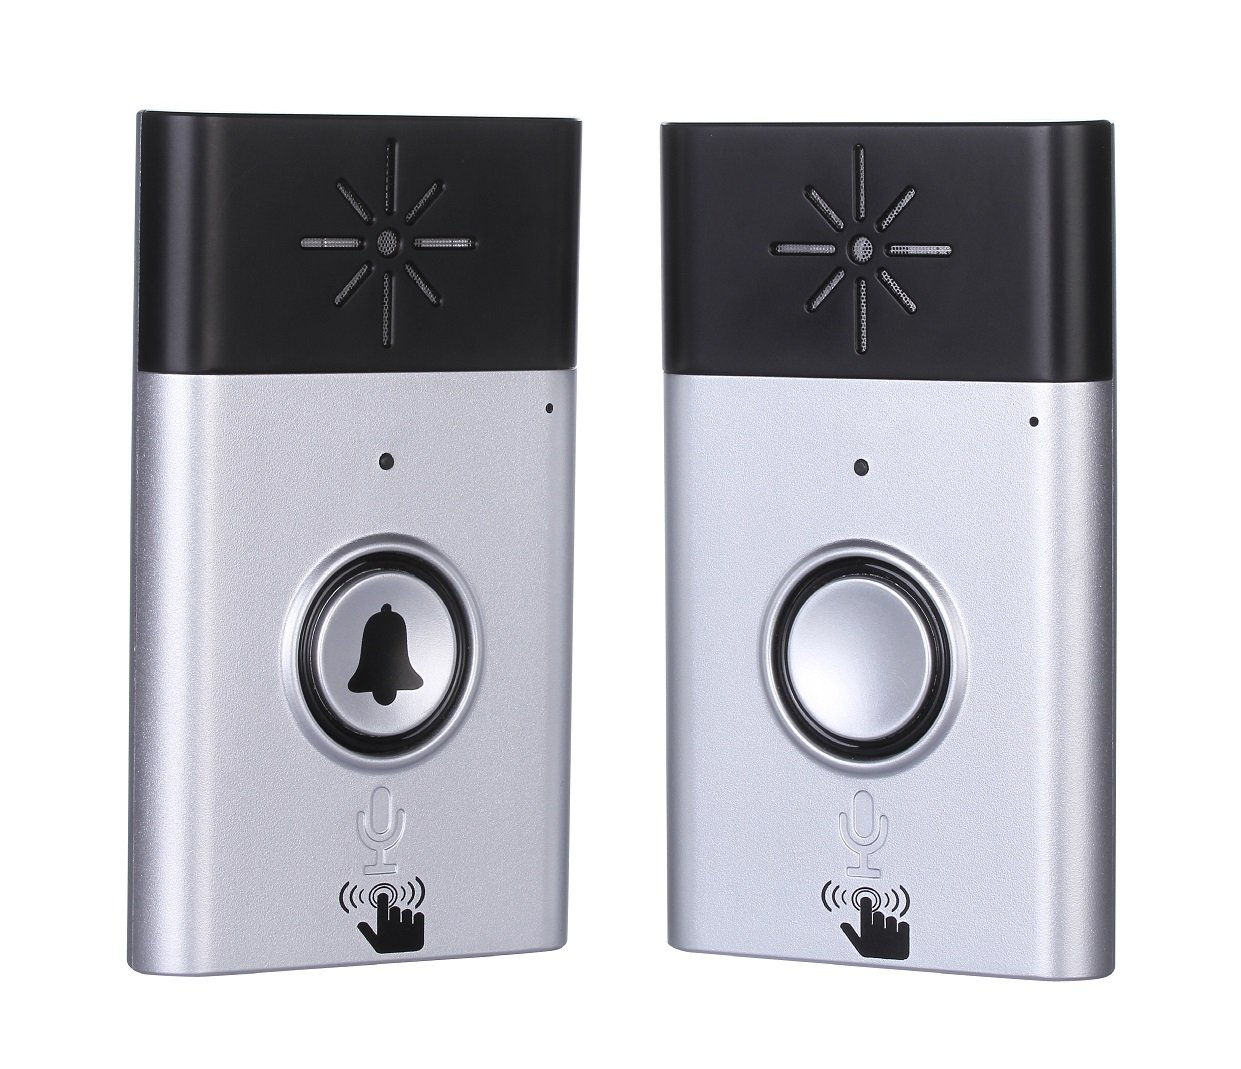 Wireless Intercom Doorbell and Wireless Chime Voice Doorbell and Two-Way Portable Walkie-talkie Operating at Over 600 feet Include 1 Receiver and 1 Push Button for Home and Offfice Silver Napok